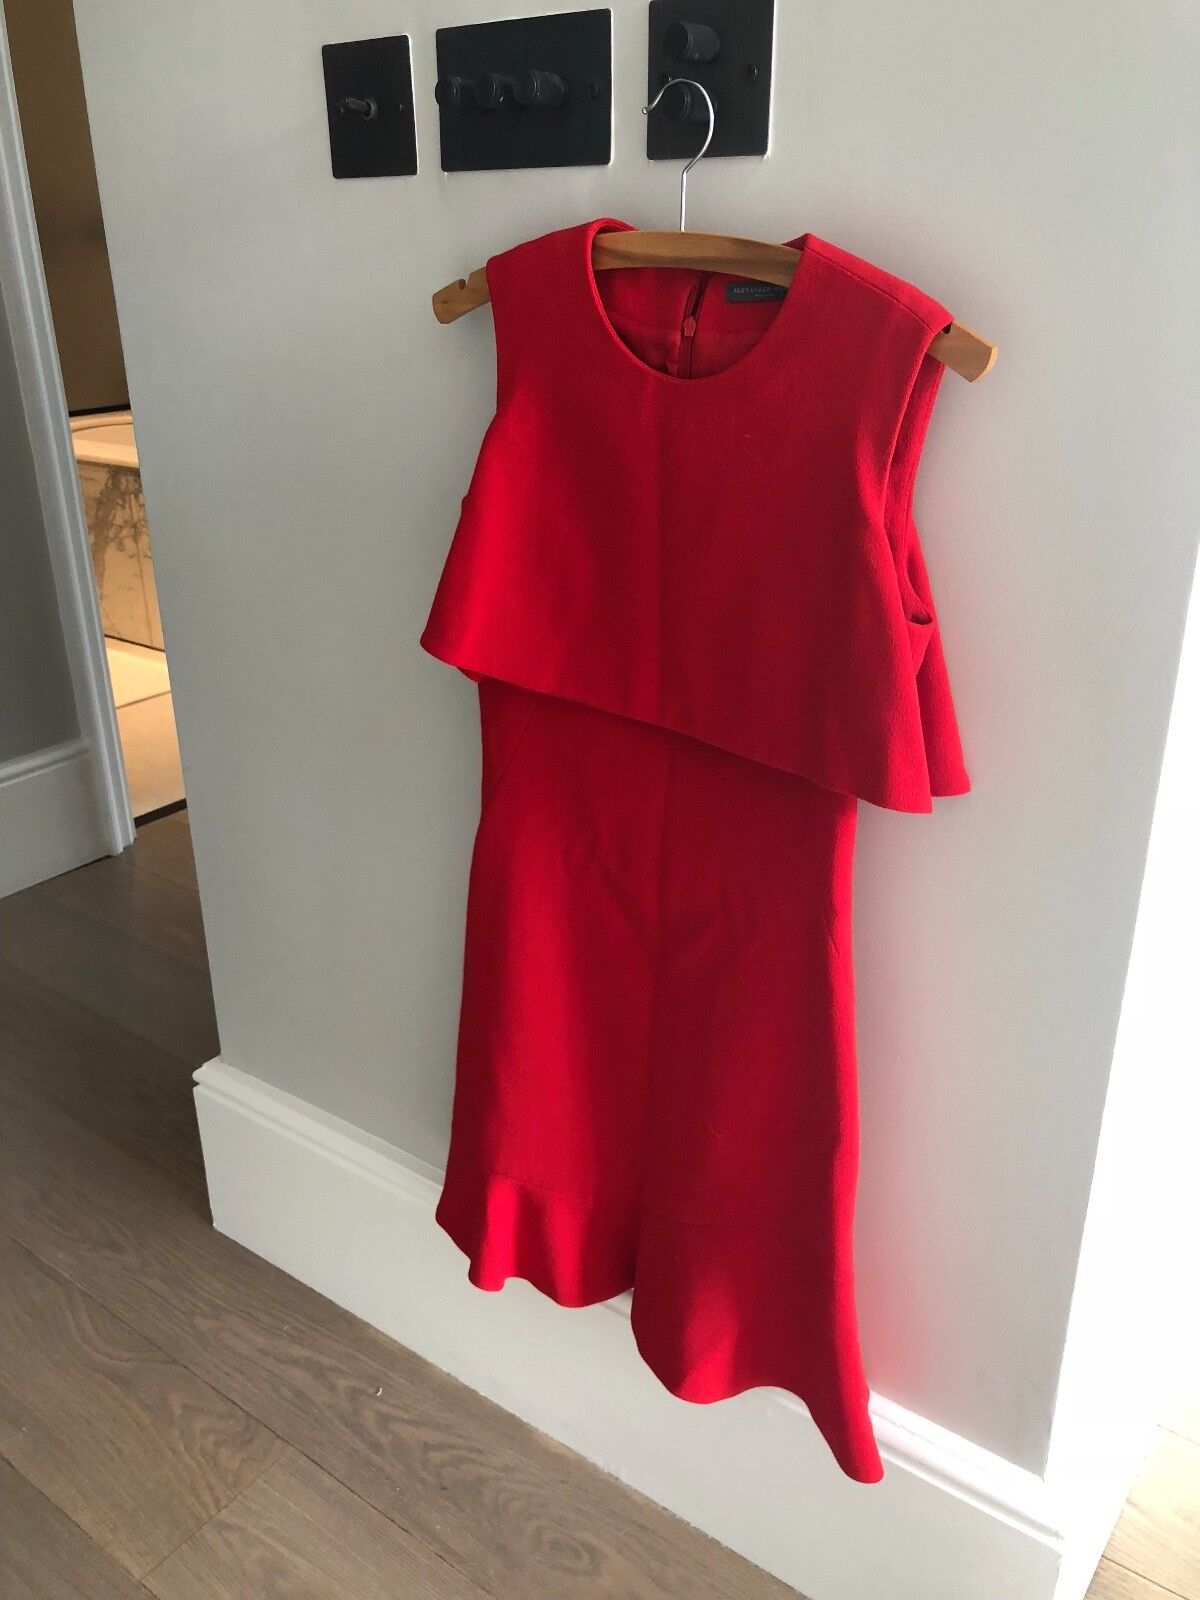 Alexander Mcqueen red dress, size S